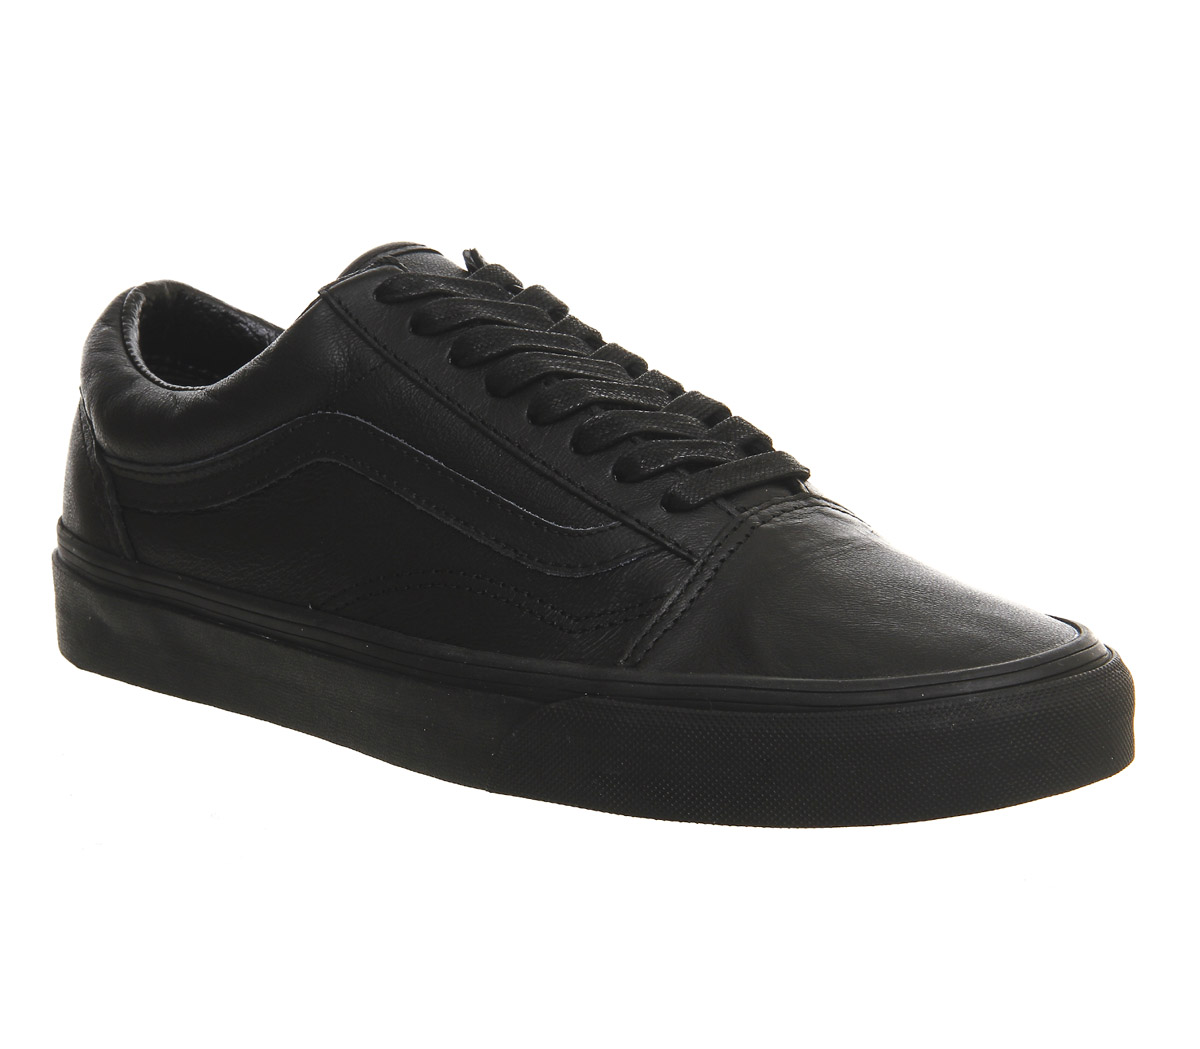 mens vans old skool leather trainers black mono trainers shoes. Black Bedroom Furniture Sets. Home Design Ideas